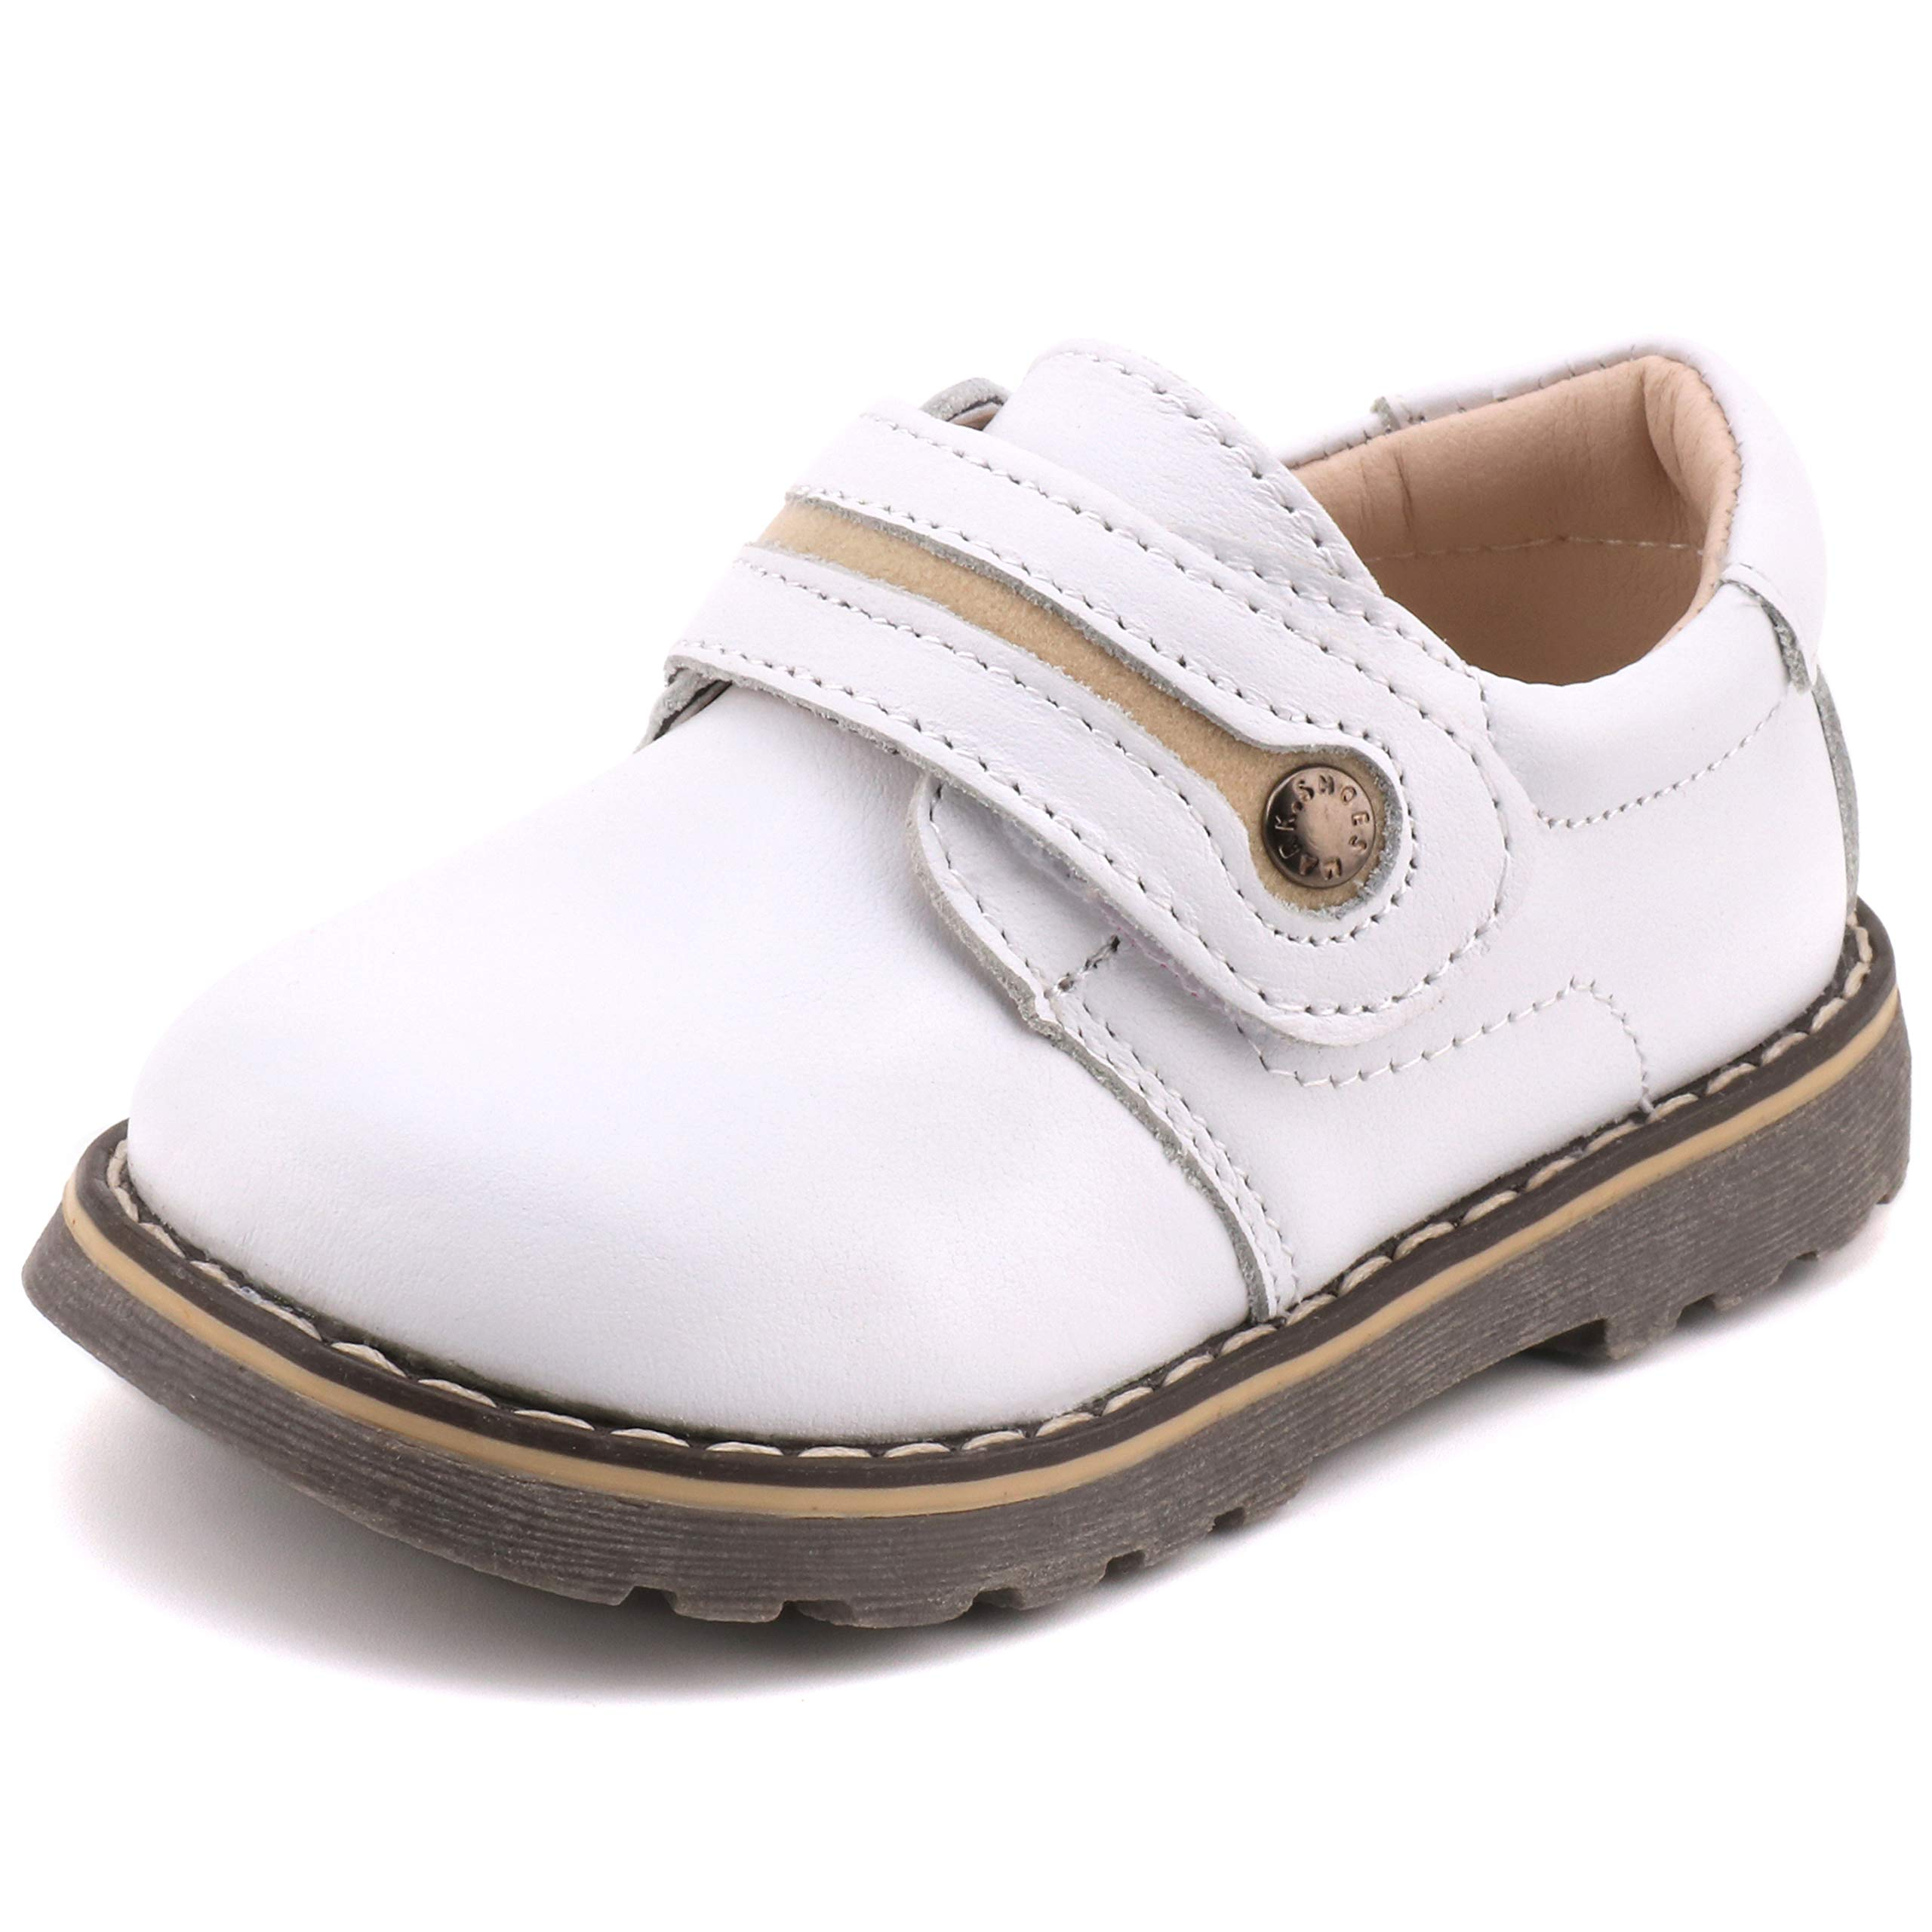 Femizee Toddler Boys Leather Loafers Comfort Uniform Oxford Dress Wedding Shoes, White, 1327 CN26